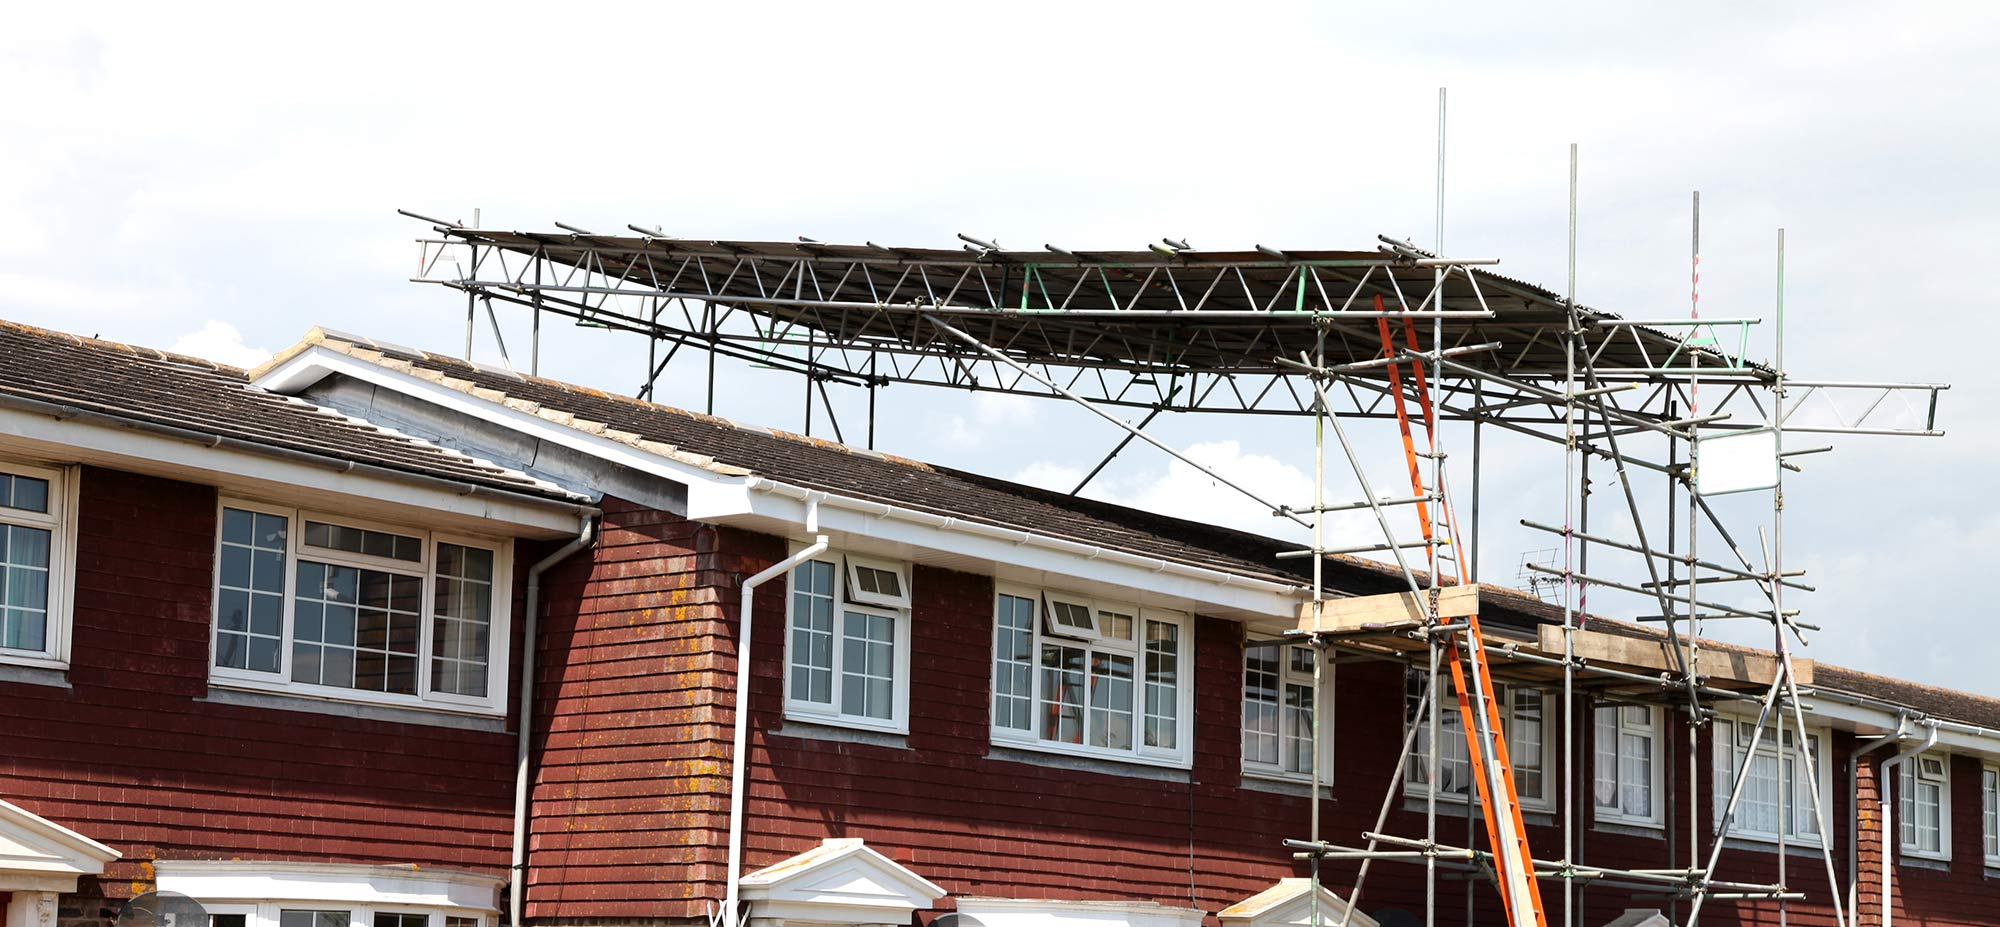 Roofing In St Albans Temporary Roofing St Albans Emergency Roofing Watford Roof Repair Scaffolding St Albans Hospital 01582 840986 St Alban S Church Fulham Robert Lombardelli Partnership Ltd The Best Inspiration